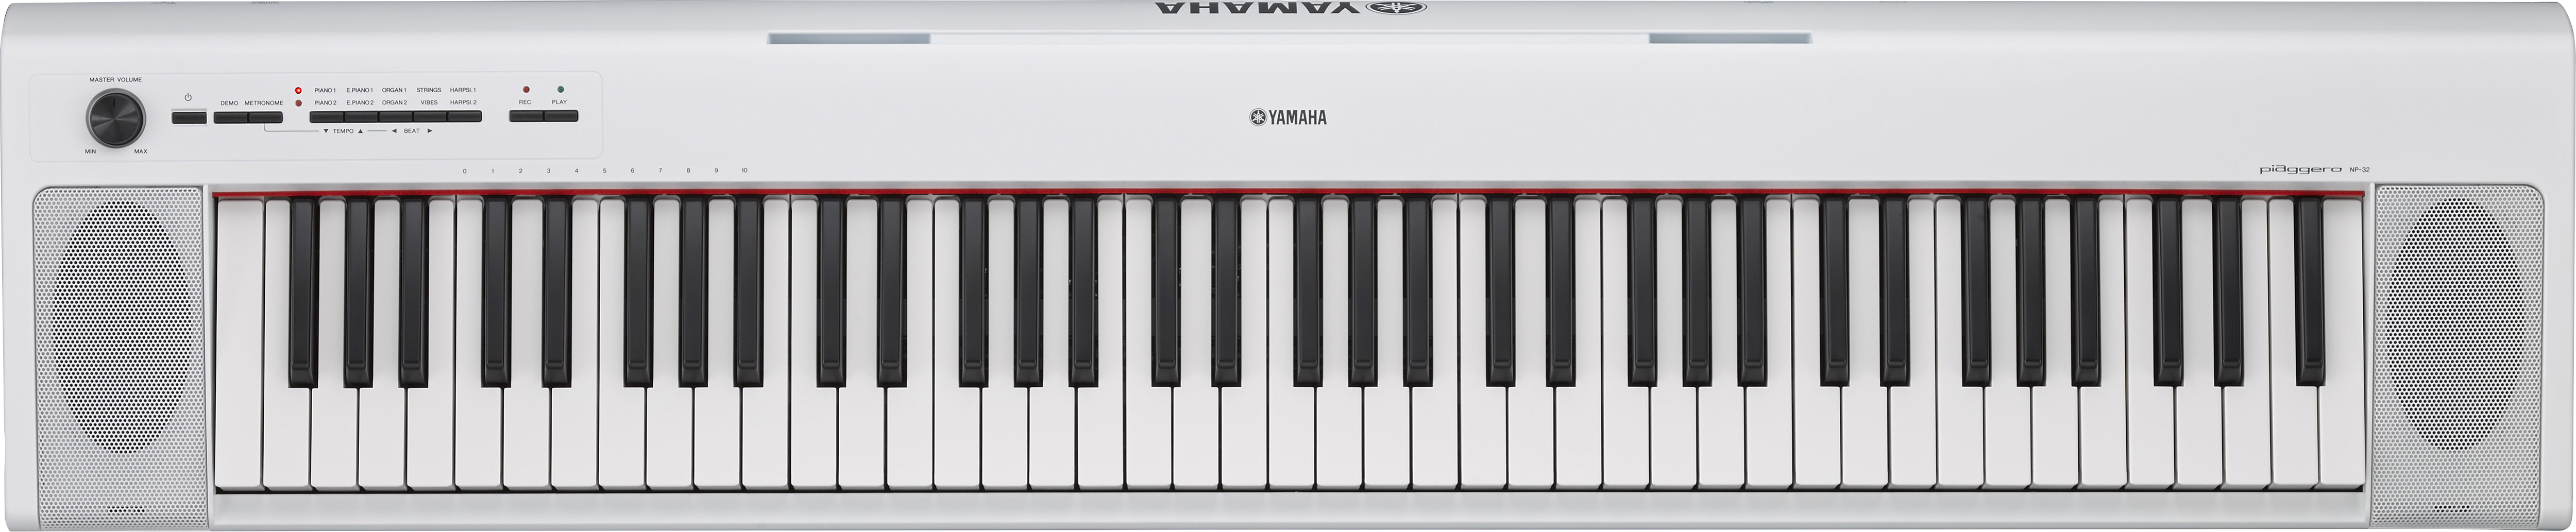 Yamaha NP32 76-Key Lightweight Portable Keyboard, White by Yamaha